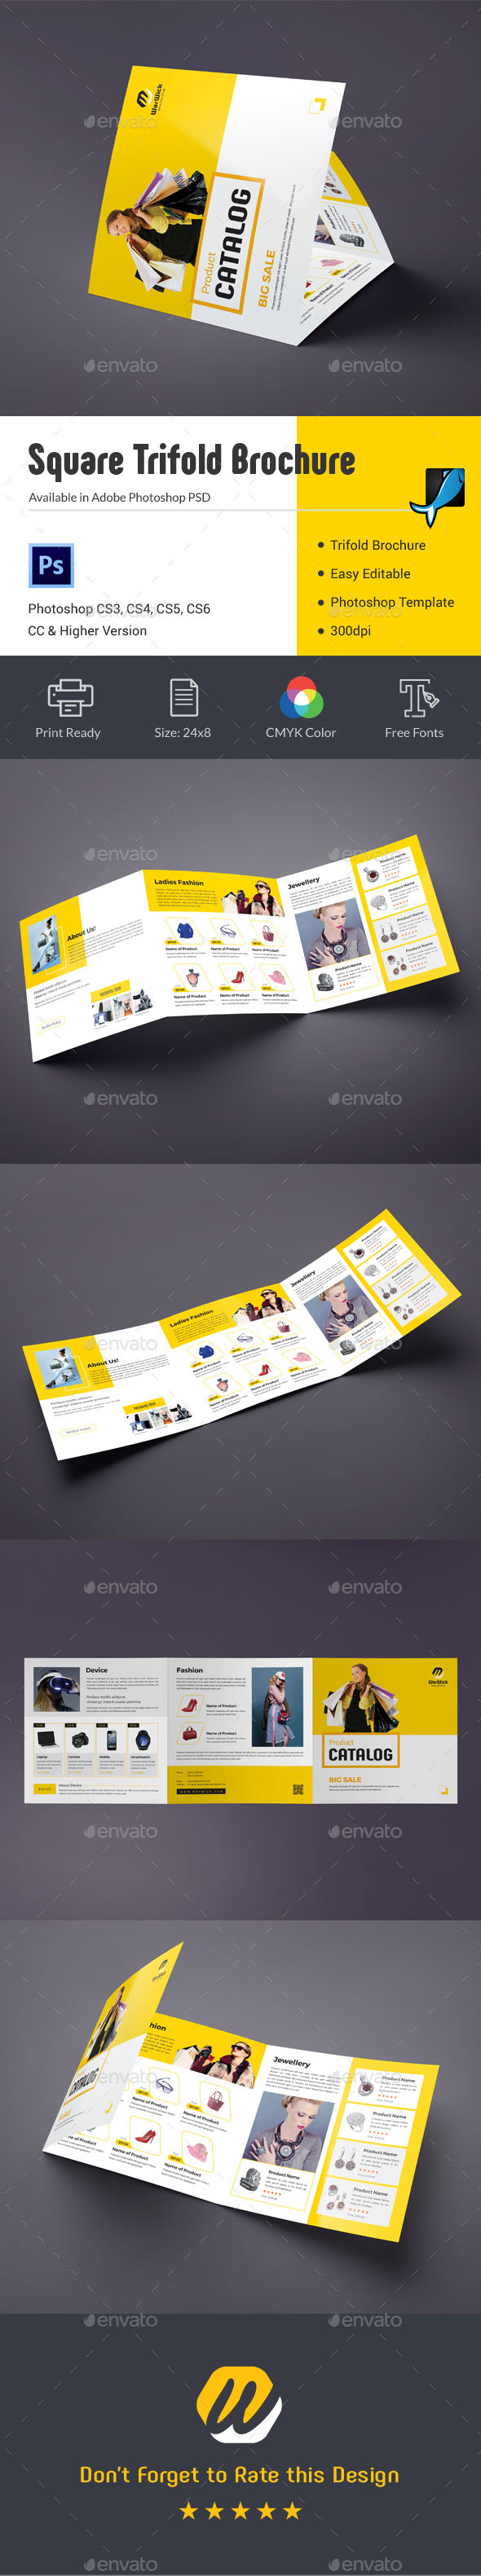 Product Promotion Square Trifold Brochure - Catalogs Brochures